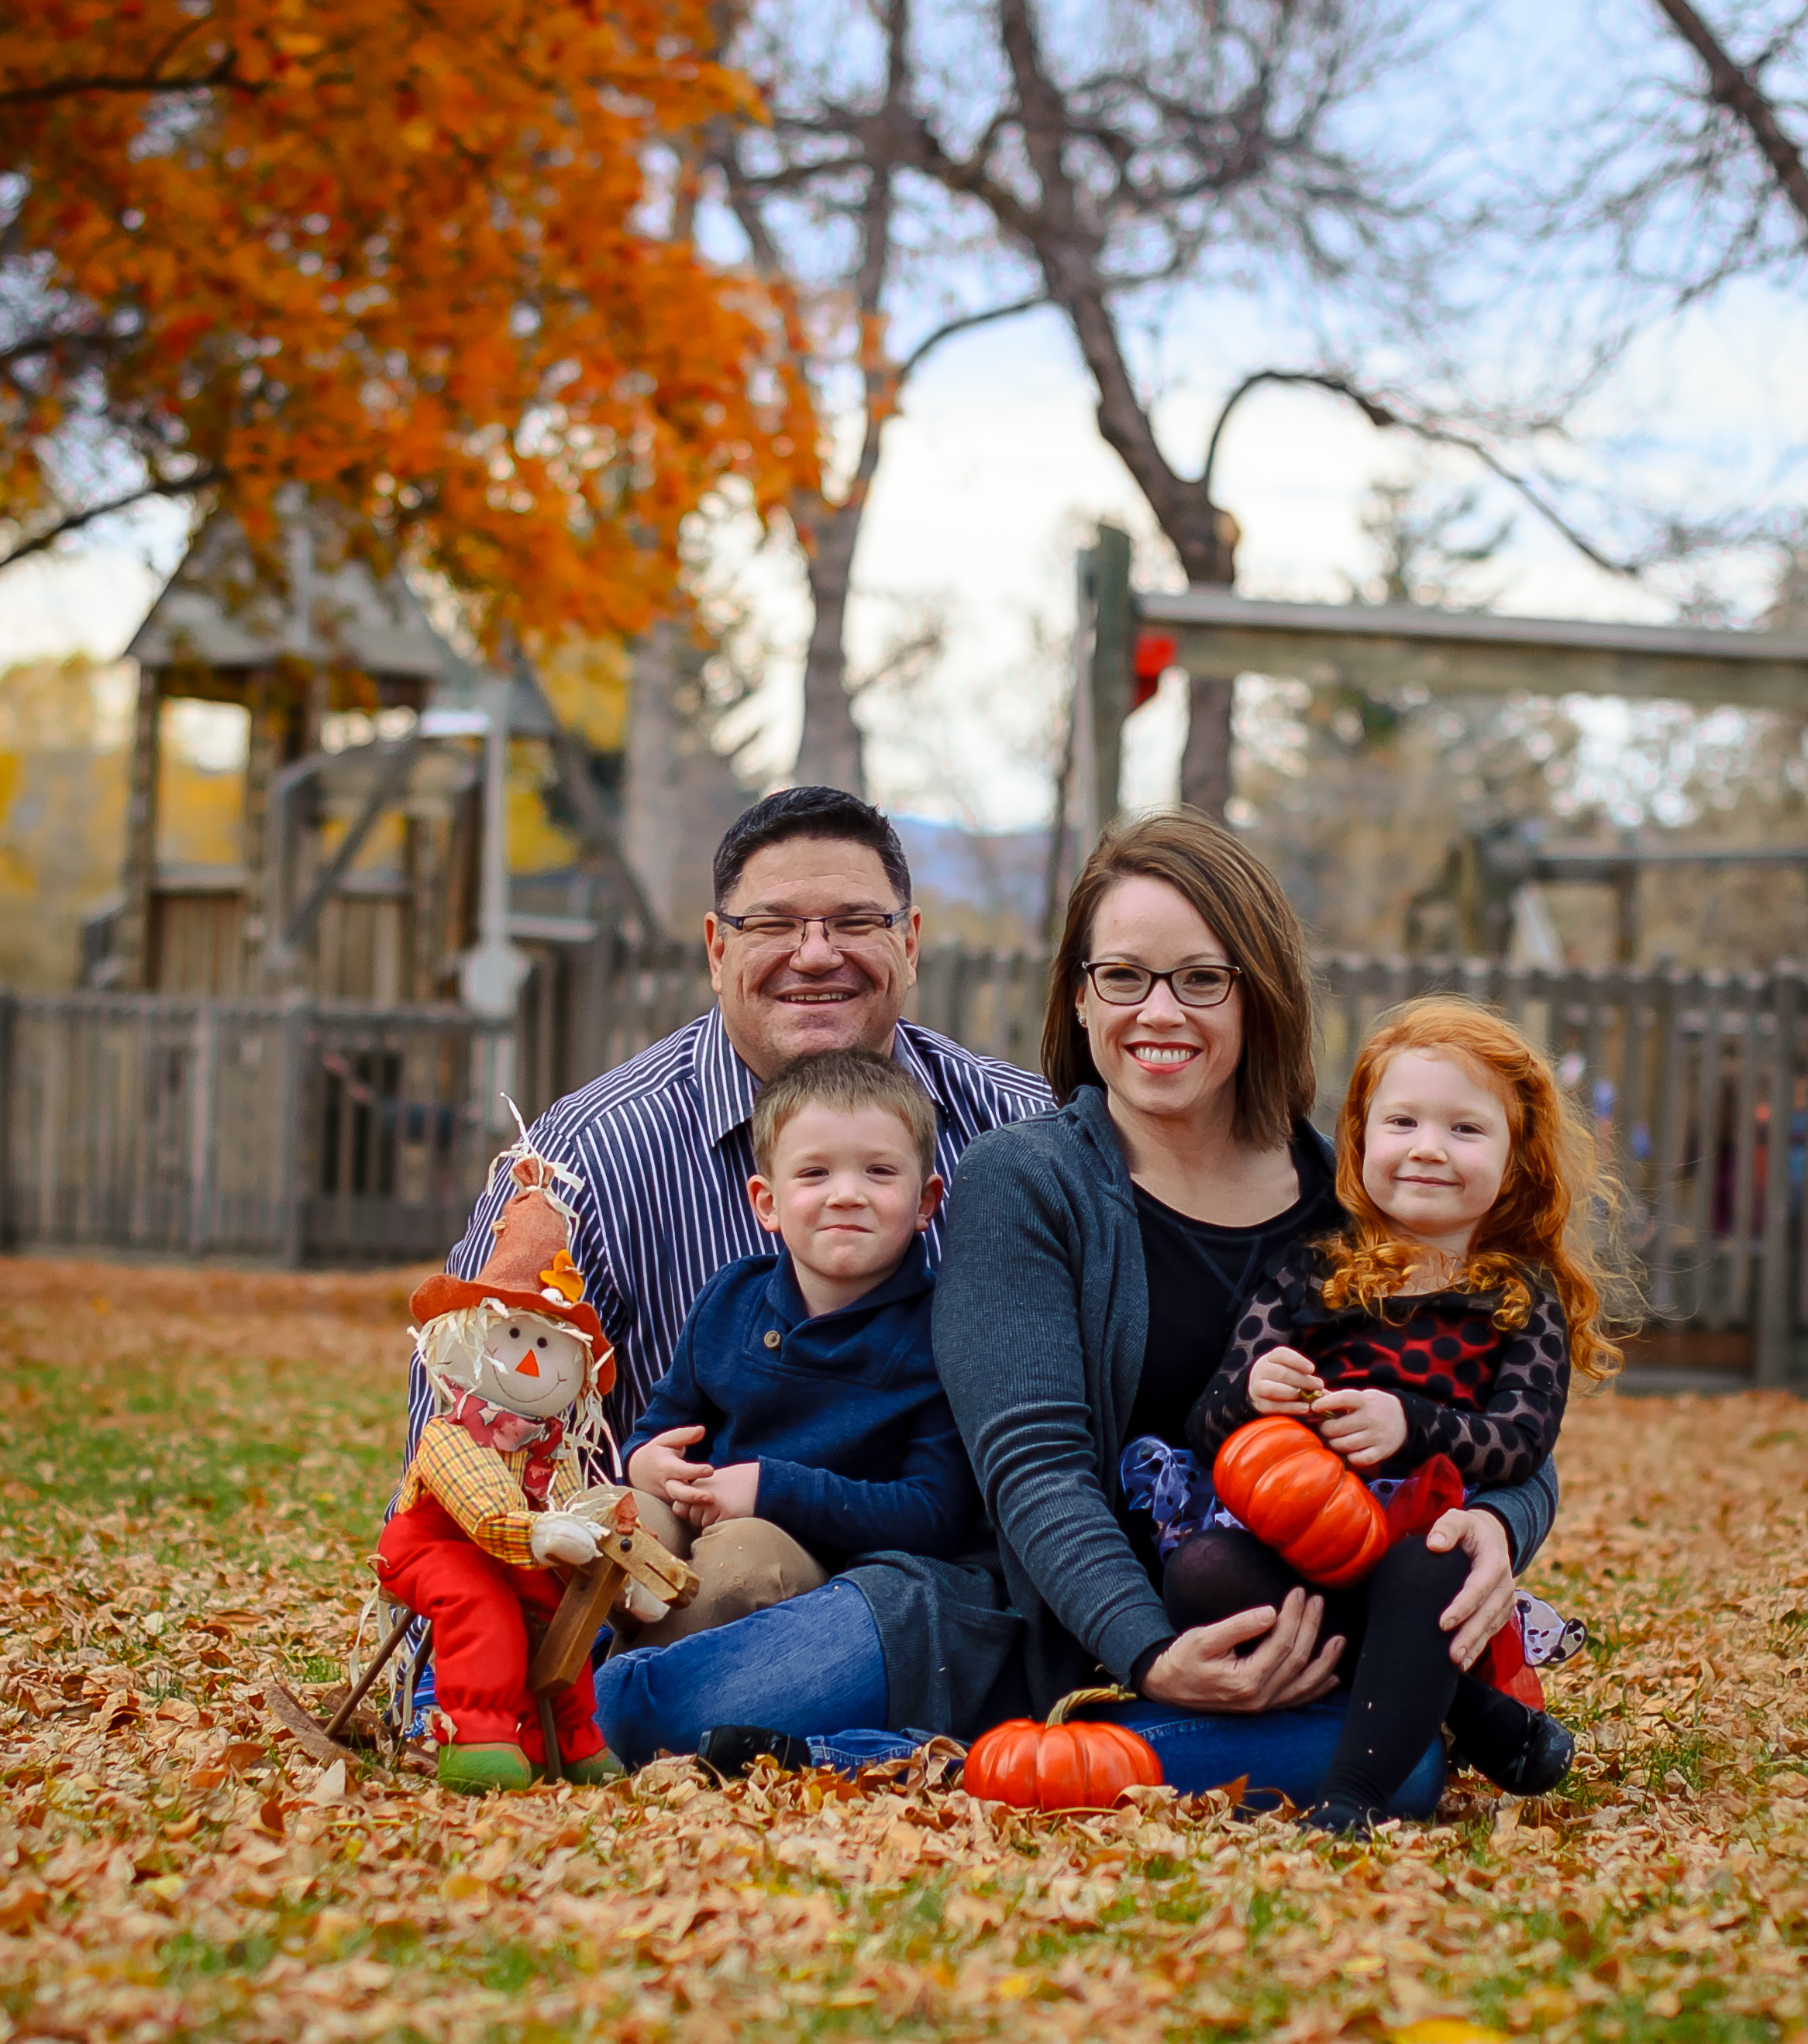 We loved this family session.  Family Photography by  Abigayle Ray Photography LLC  at  Sacajawea Park  in the  City of Livingston, Montana